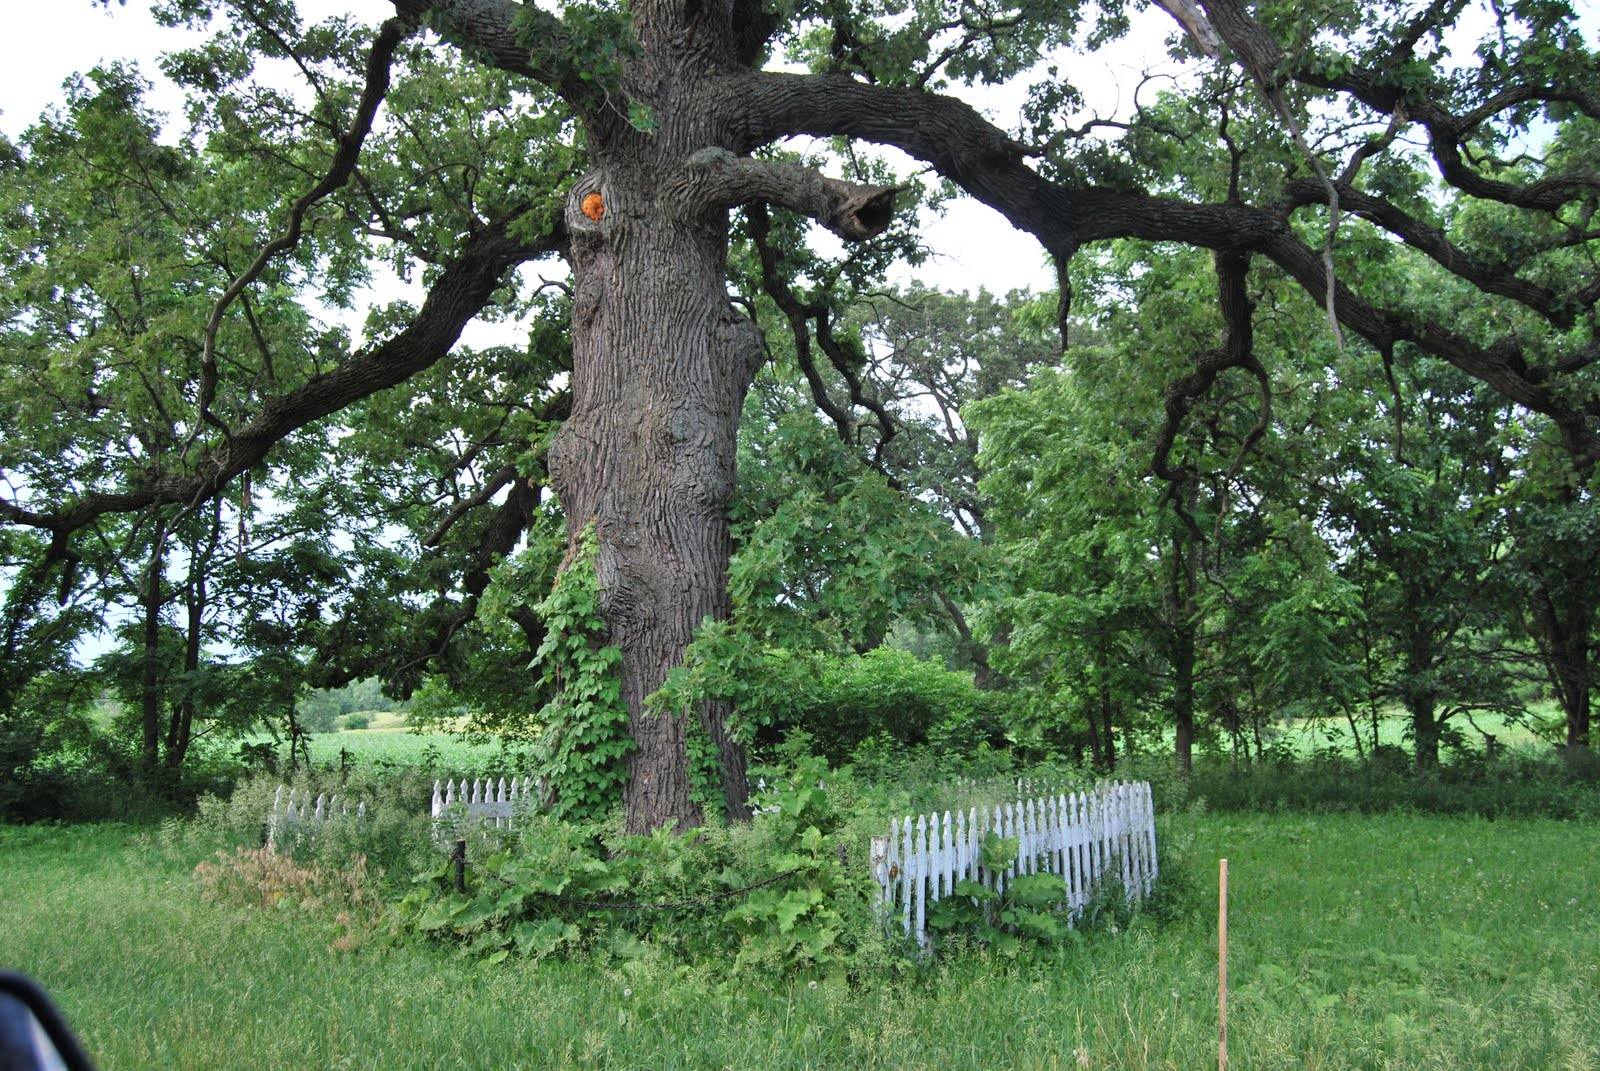 Illinois bureau county neponset - Around The Corner From The Boulder Or About Three Miles South Of Mineral Illinois On The East Side Of County Road Aa Is This Giant Burr Oak Tree